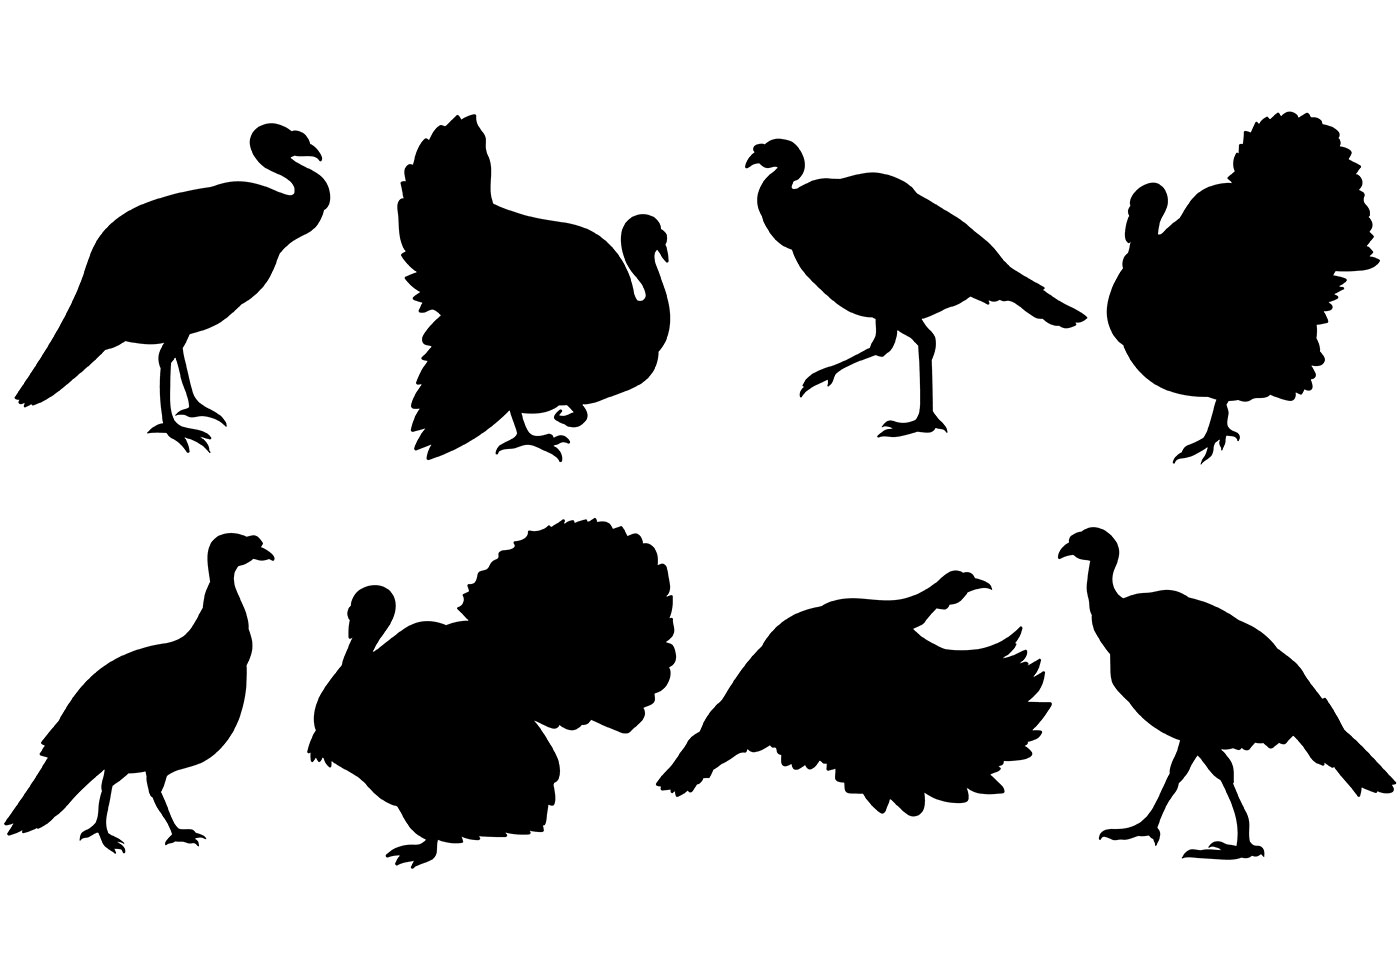 Wild turkey silhouette clipart png black and white library Turkey Free Vector Art - (1,527 Free Downloads) png black and white library